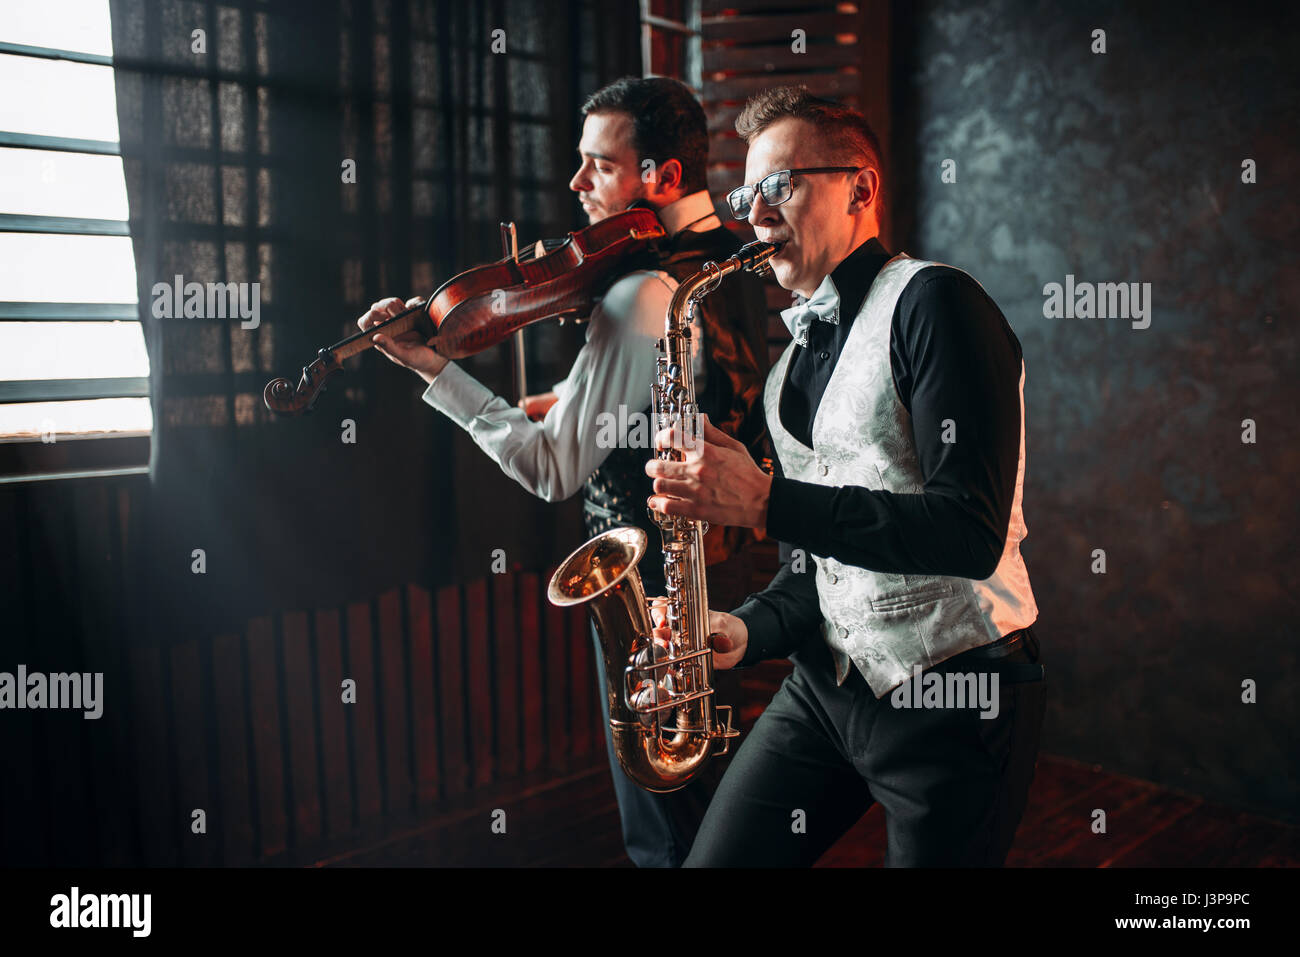 Sax man and fiddler duet playing classical melody. Jazz man and violinist - Stock Image